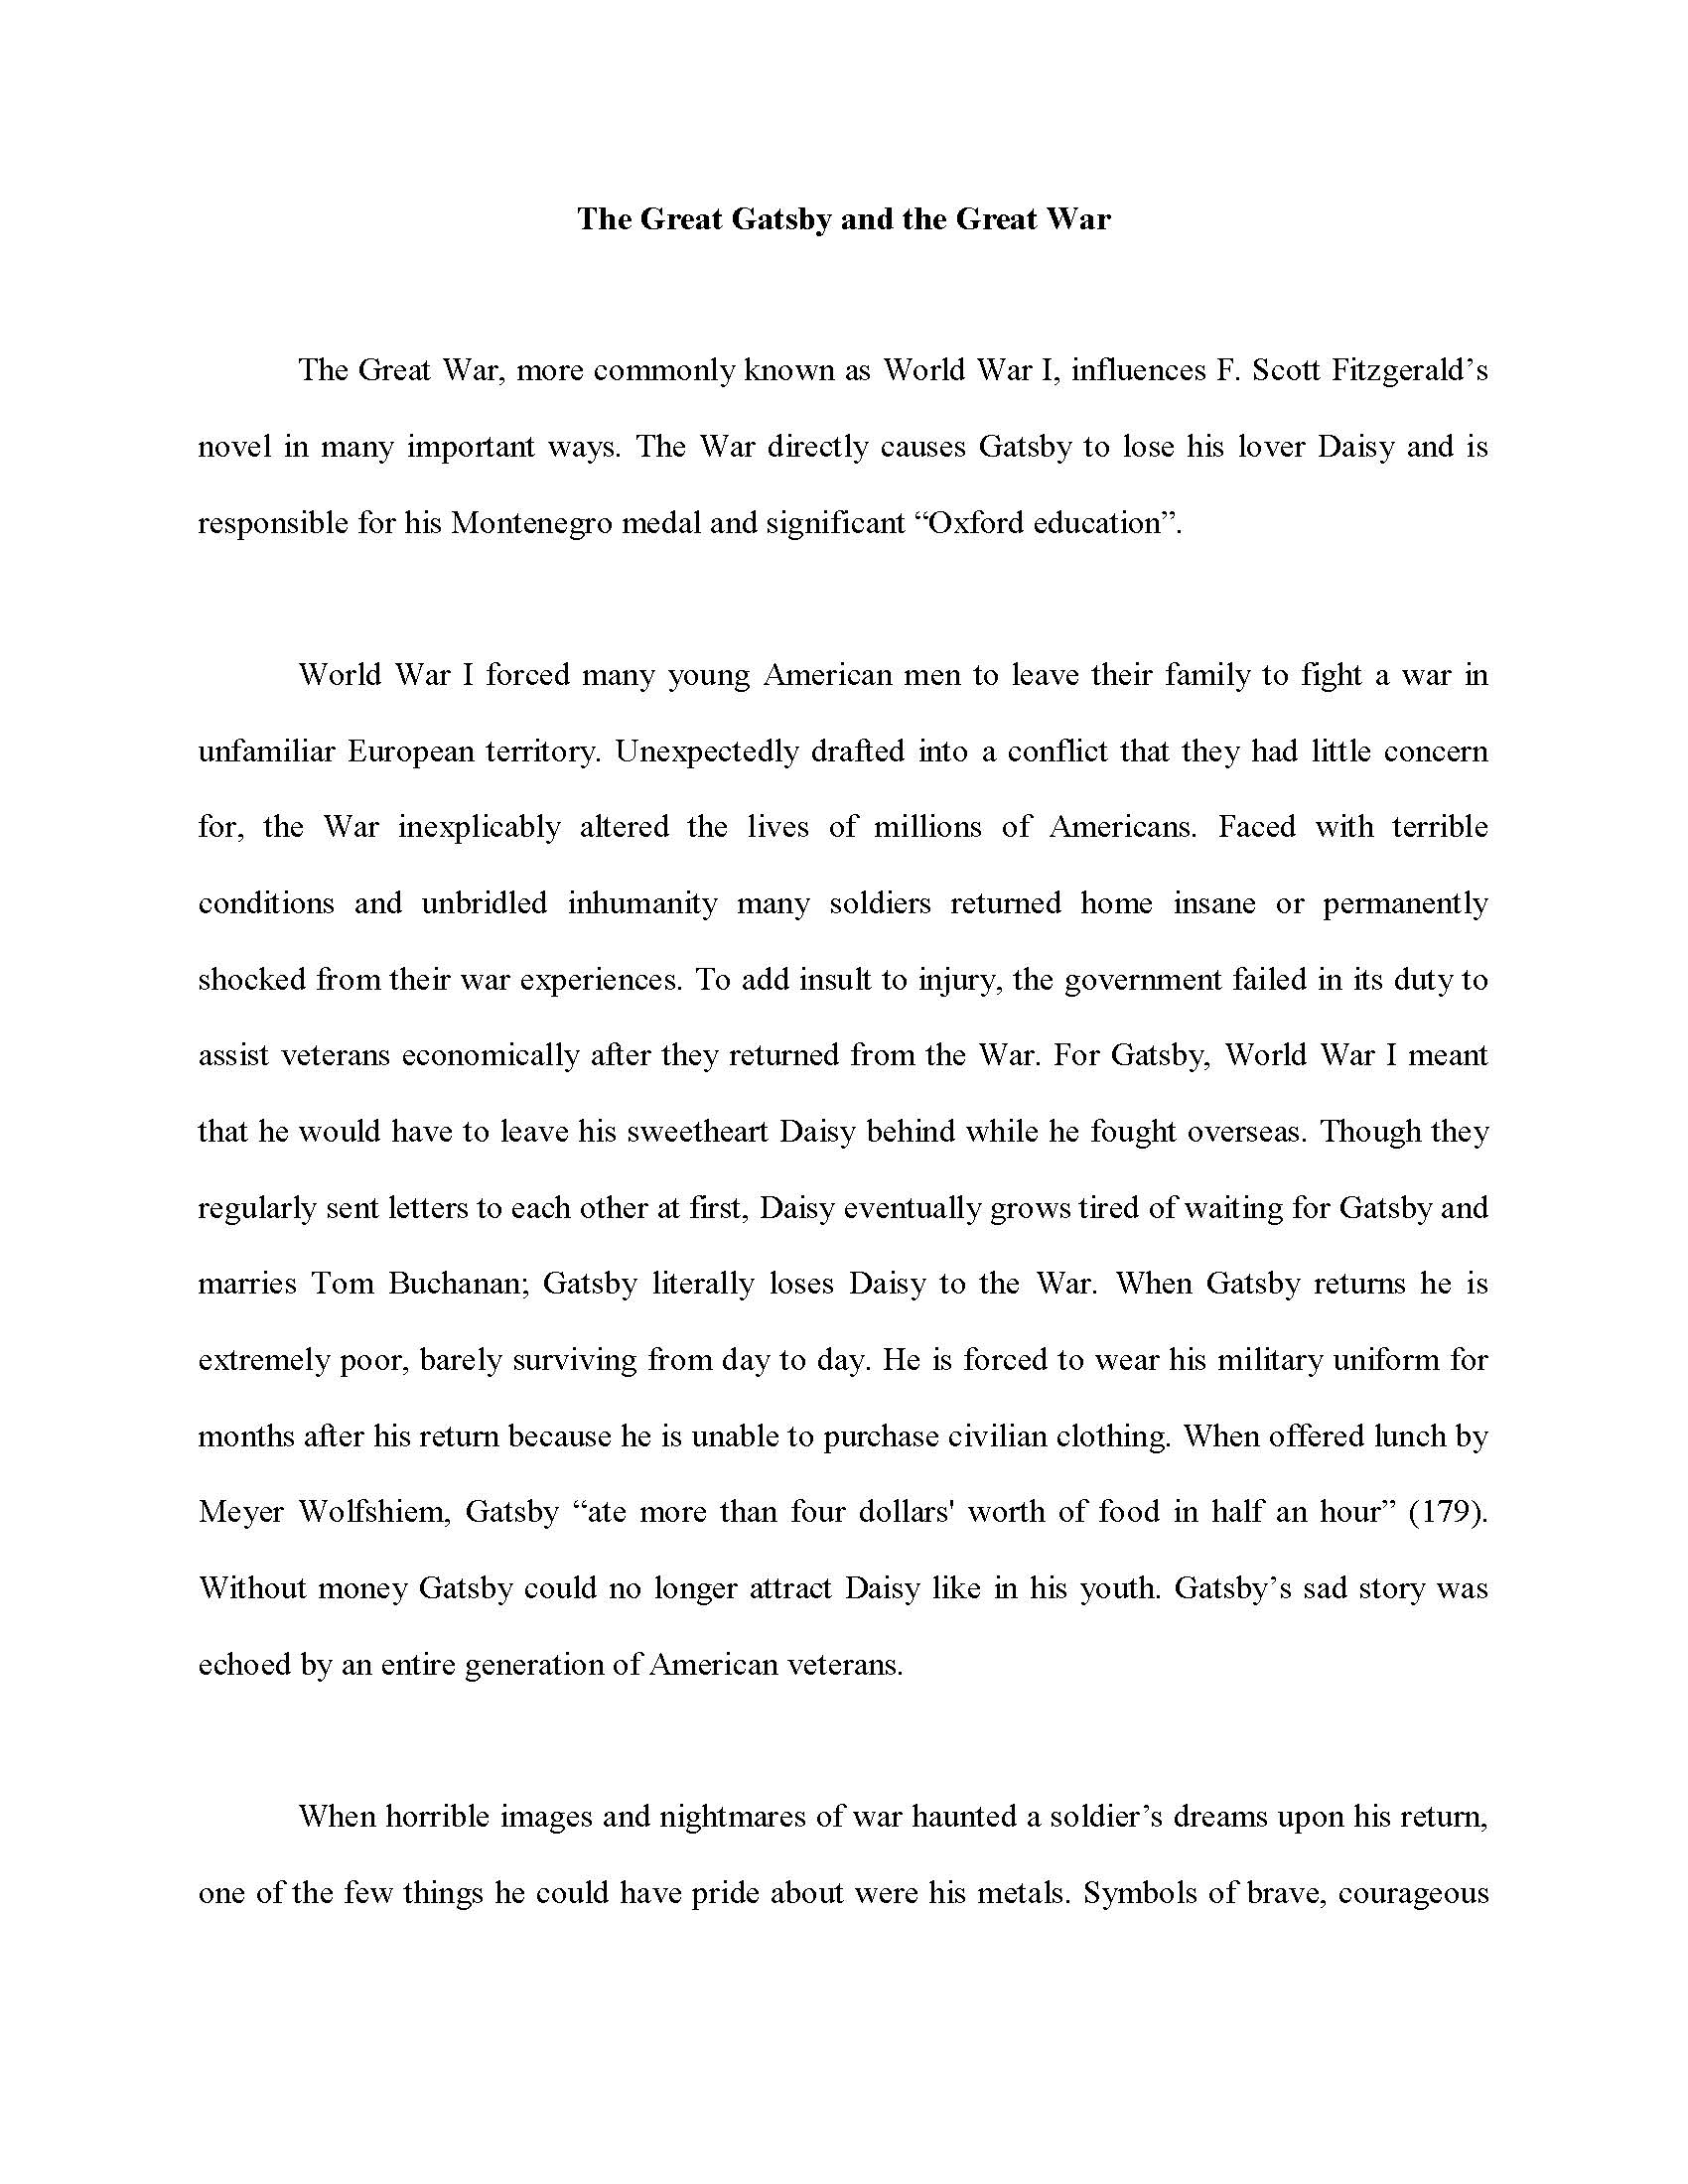 004 Informative Essay Sample Example How To Write An Singular Explanatory Expository Middle School Introduction Full